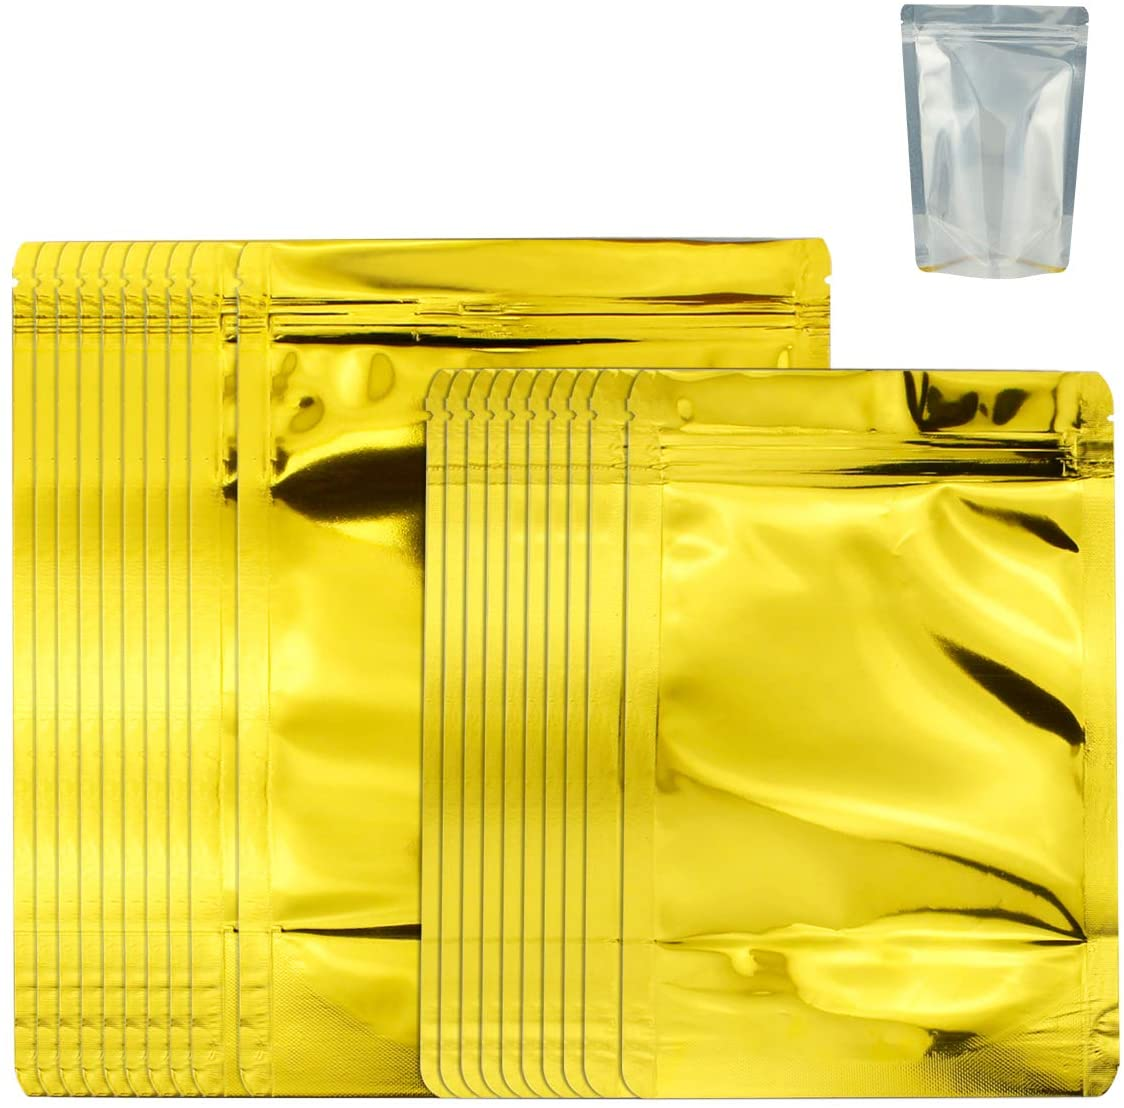 Mylar Bags Resealable Ziplock Stand Up Food Storage Aluminum Foil Bags 20 Pack Thickened Reusable Pouches 2 Different Sizes for Beans Coffee Cookie Snack Food Dried Flowers Tea-Golden